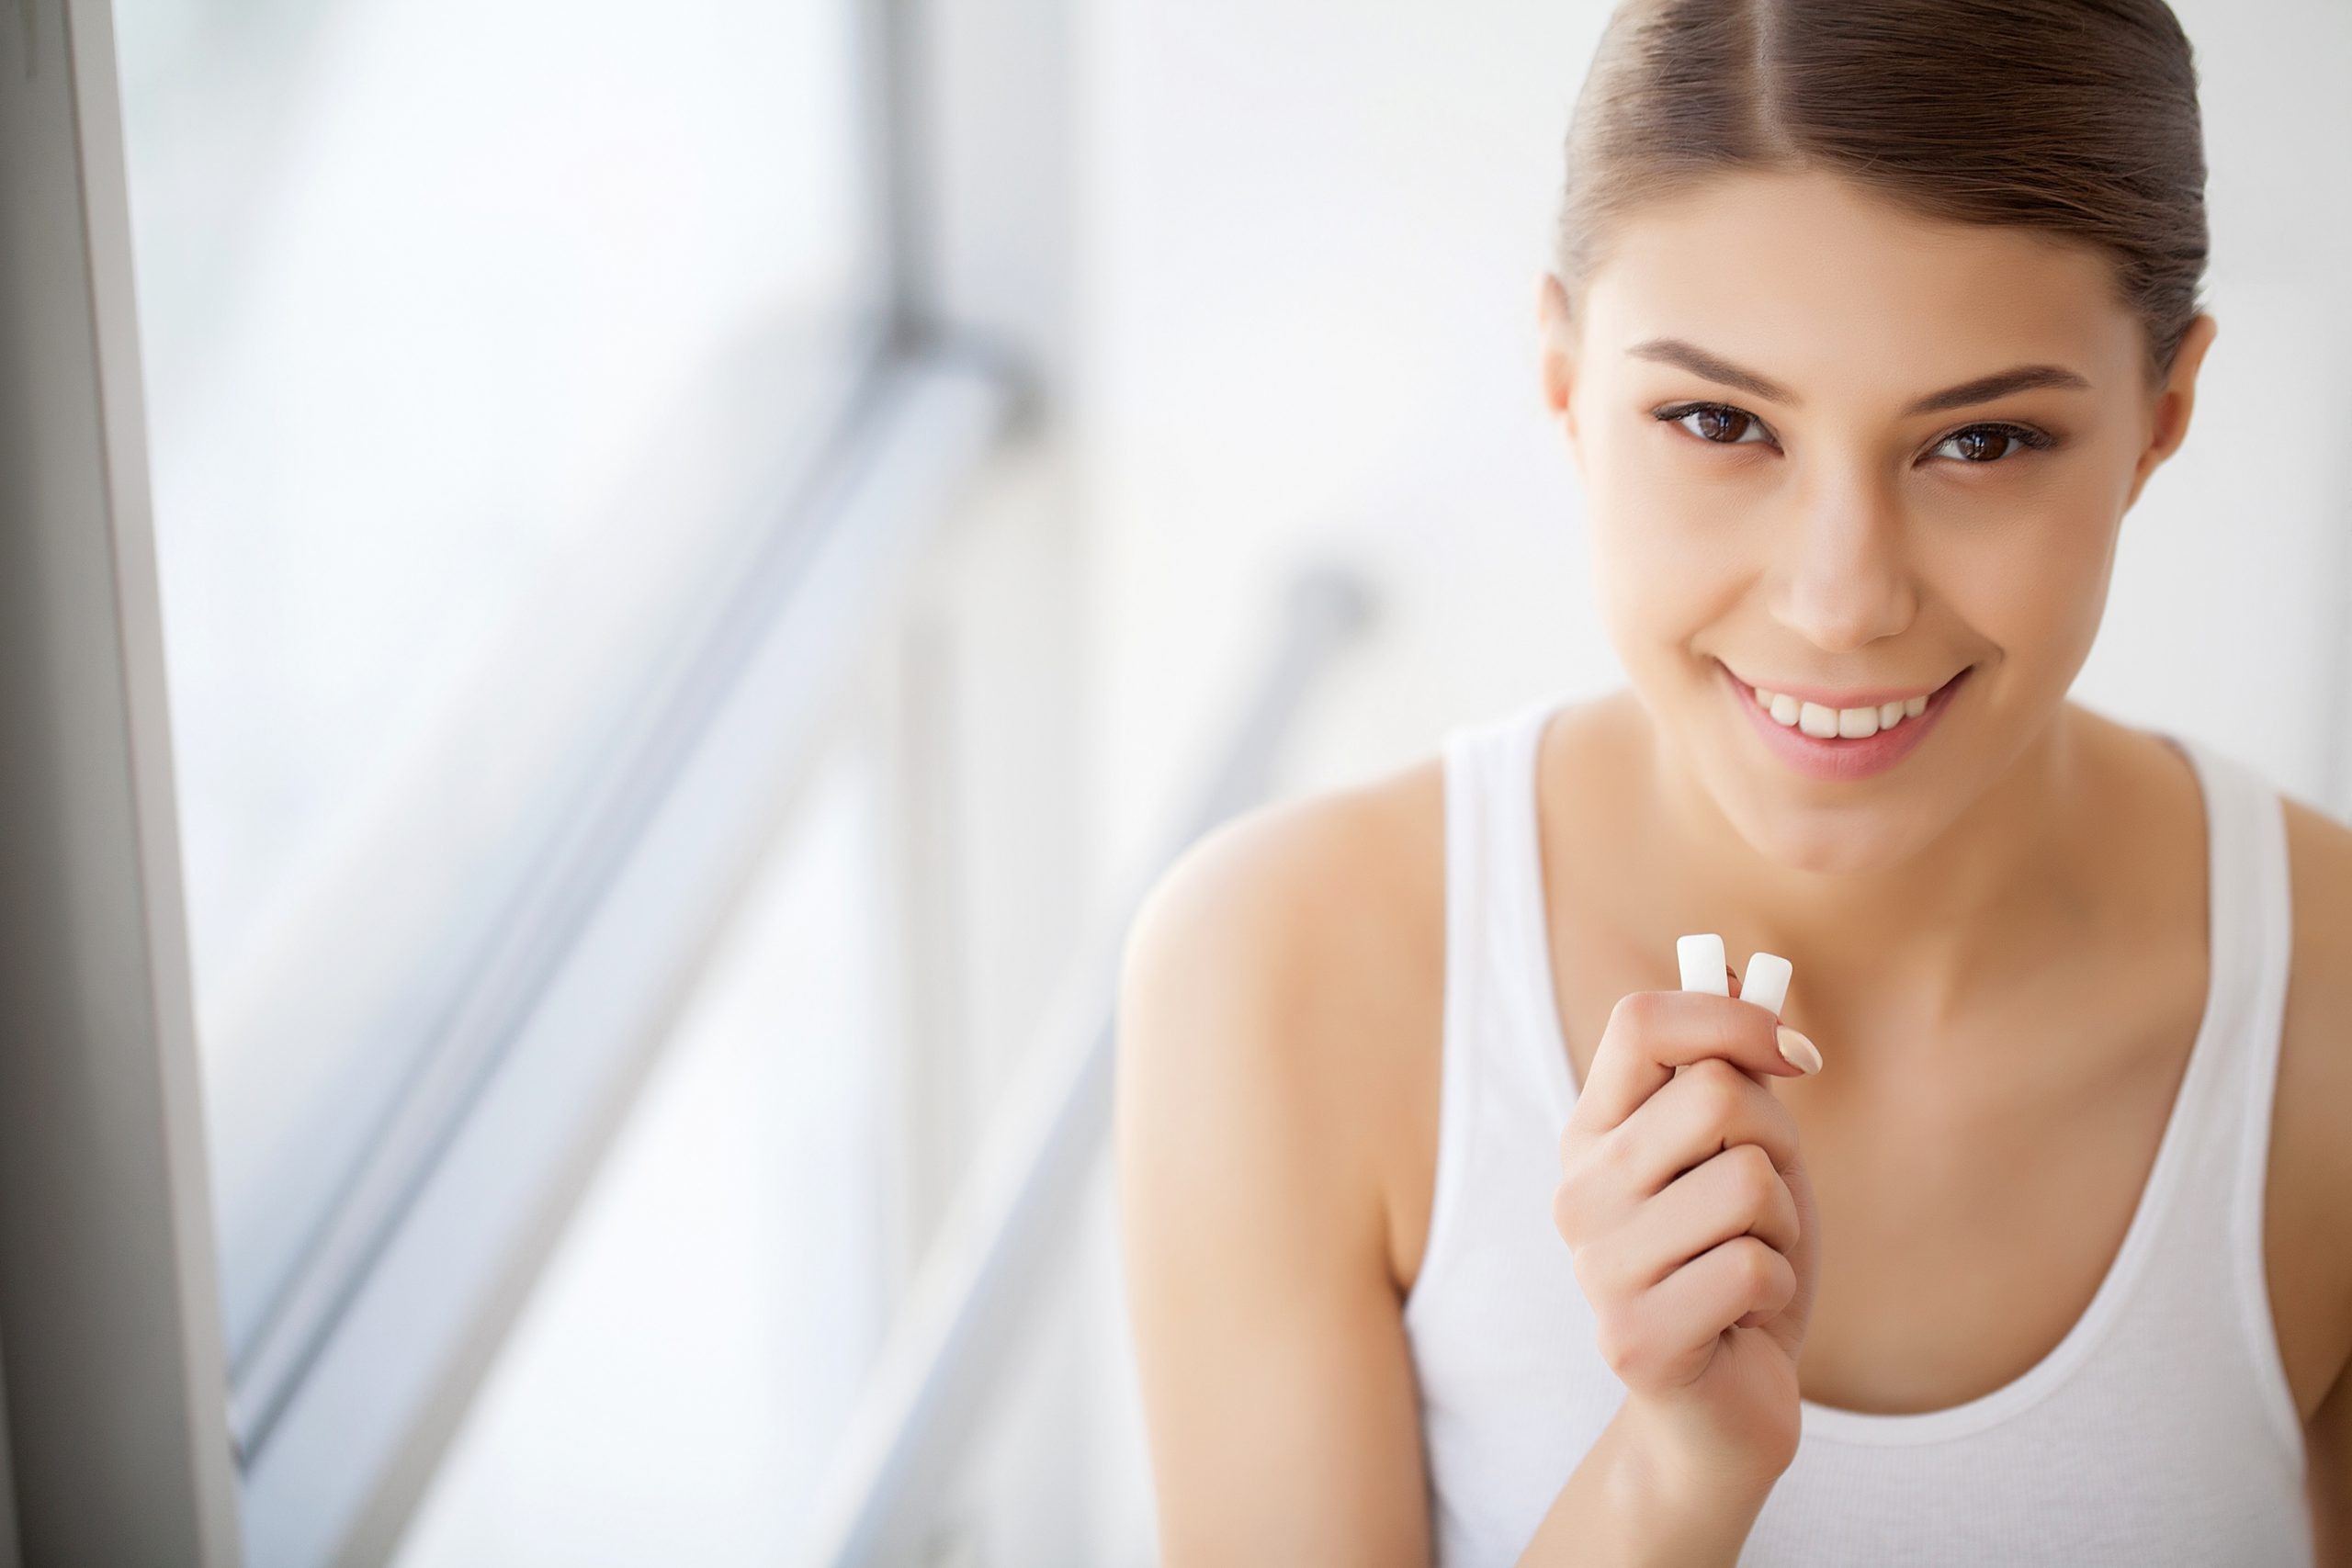 Beautiful young woman eating chewing gum, smiling